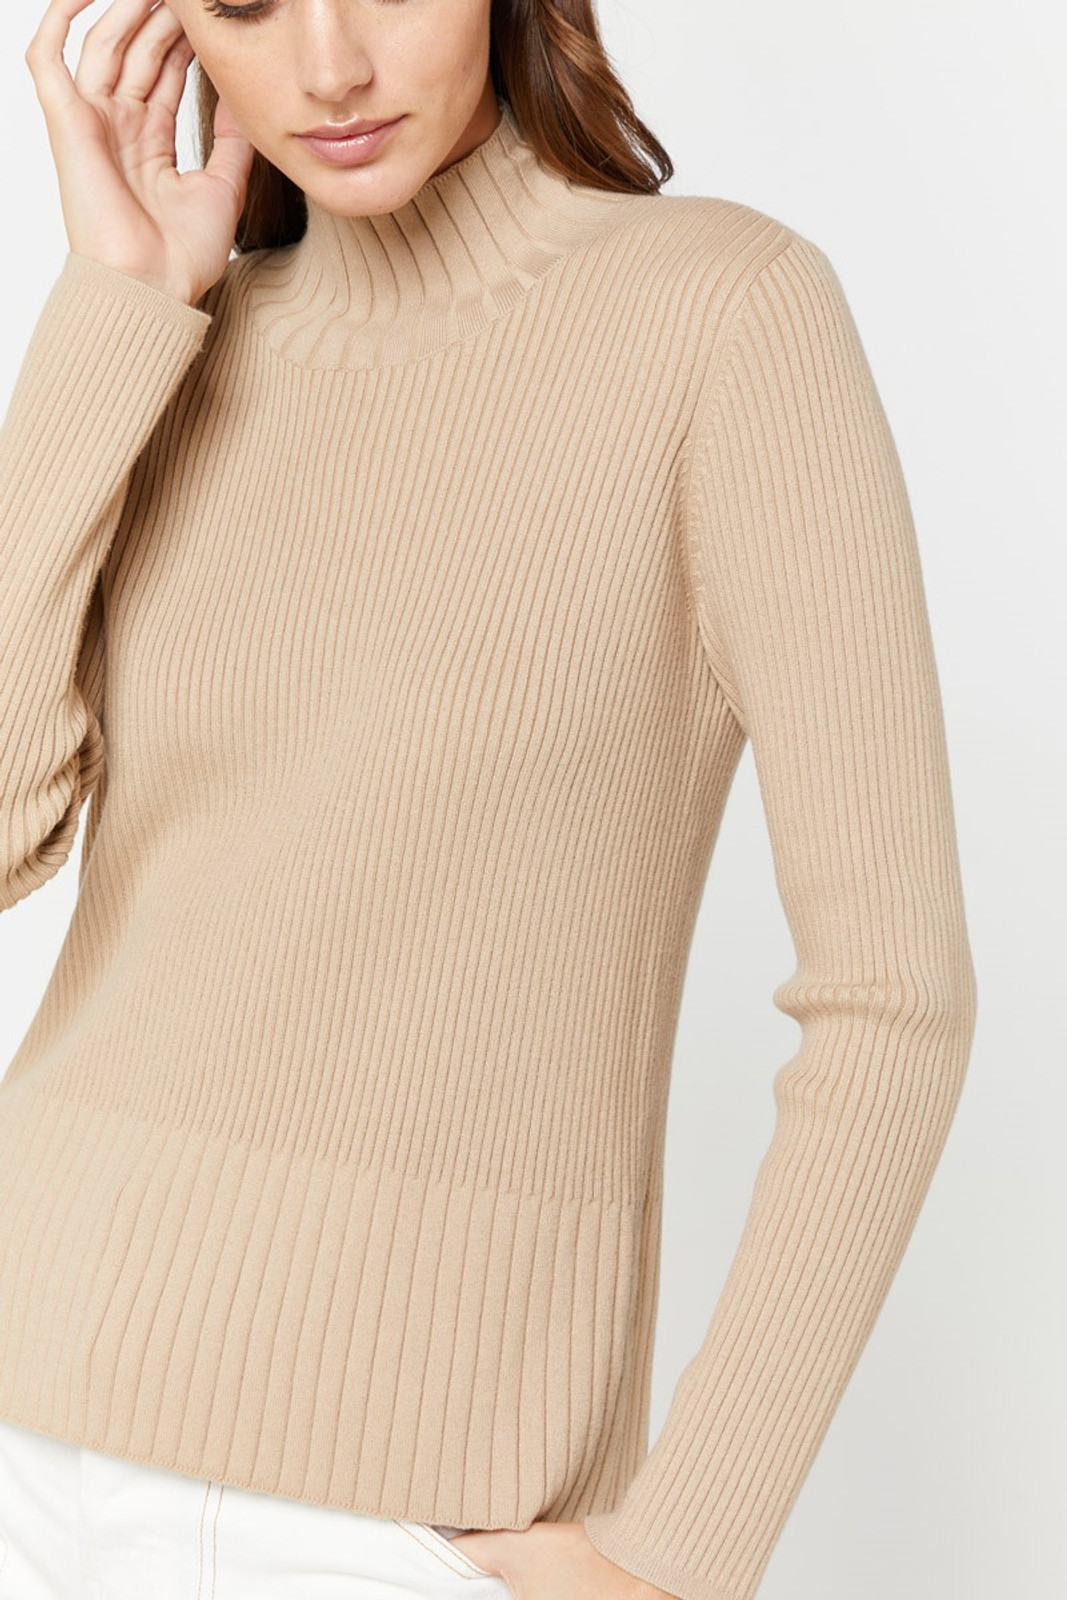 Elka Collective  Neutrals Carson Knit 7